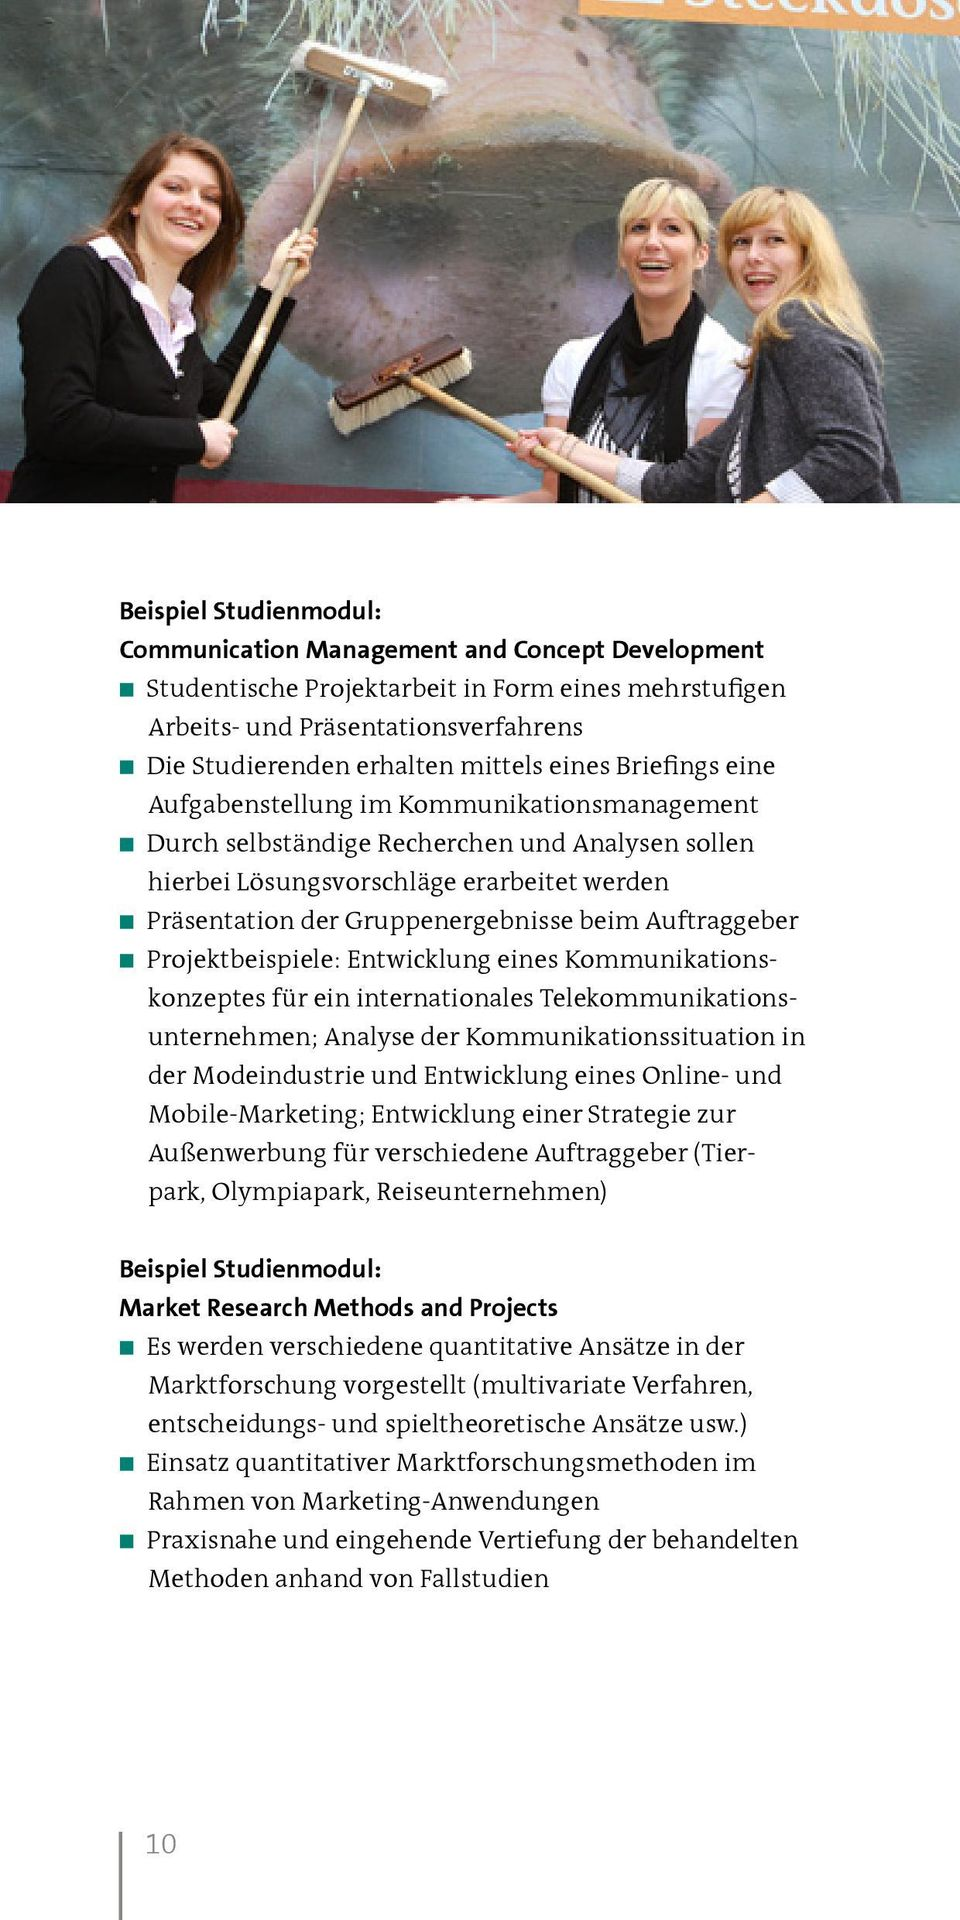 Auftraggeber Projektbeispiele: Entwicklung eines Kommunikationskonzeptes für ein internationales Telekommunikationsunternehmen; Analyse der Kommunikationssituation in der Modeindustrie und